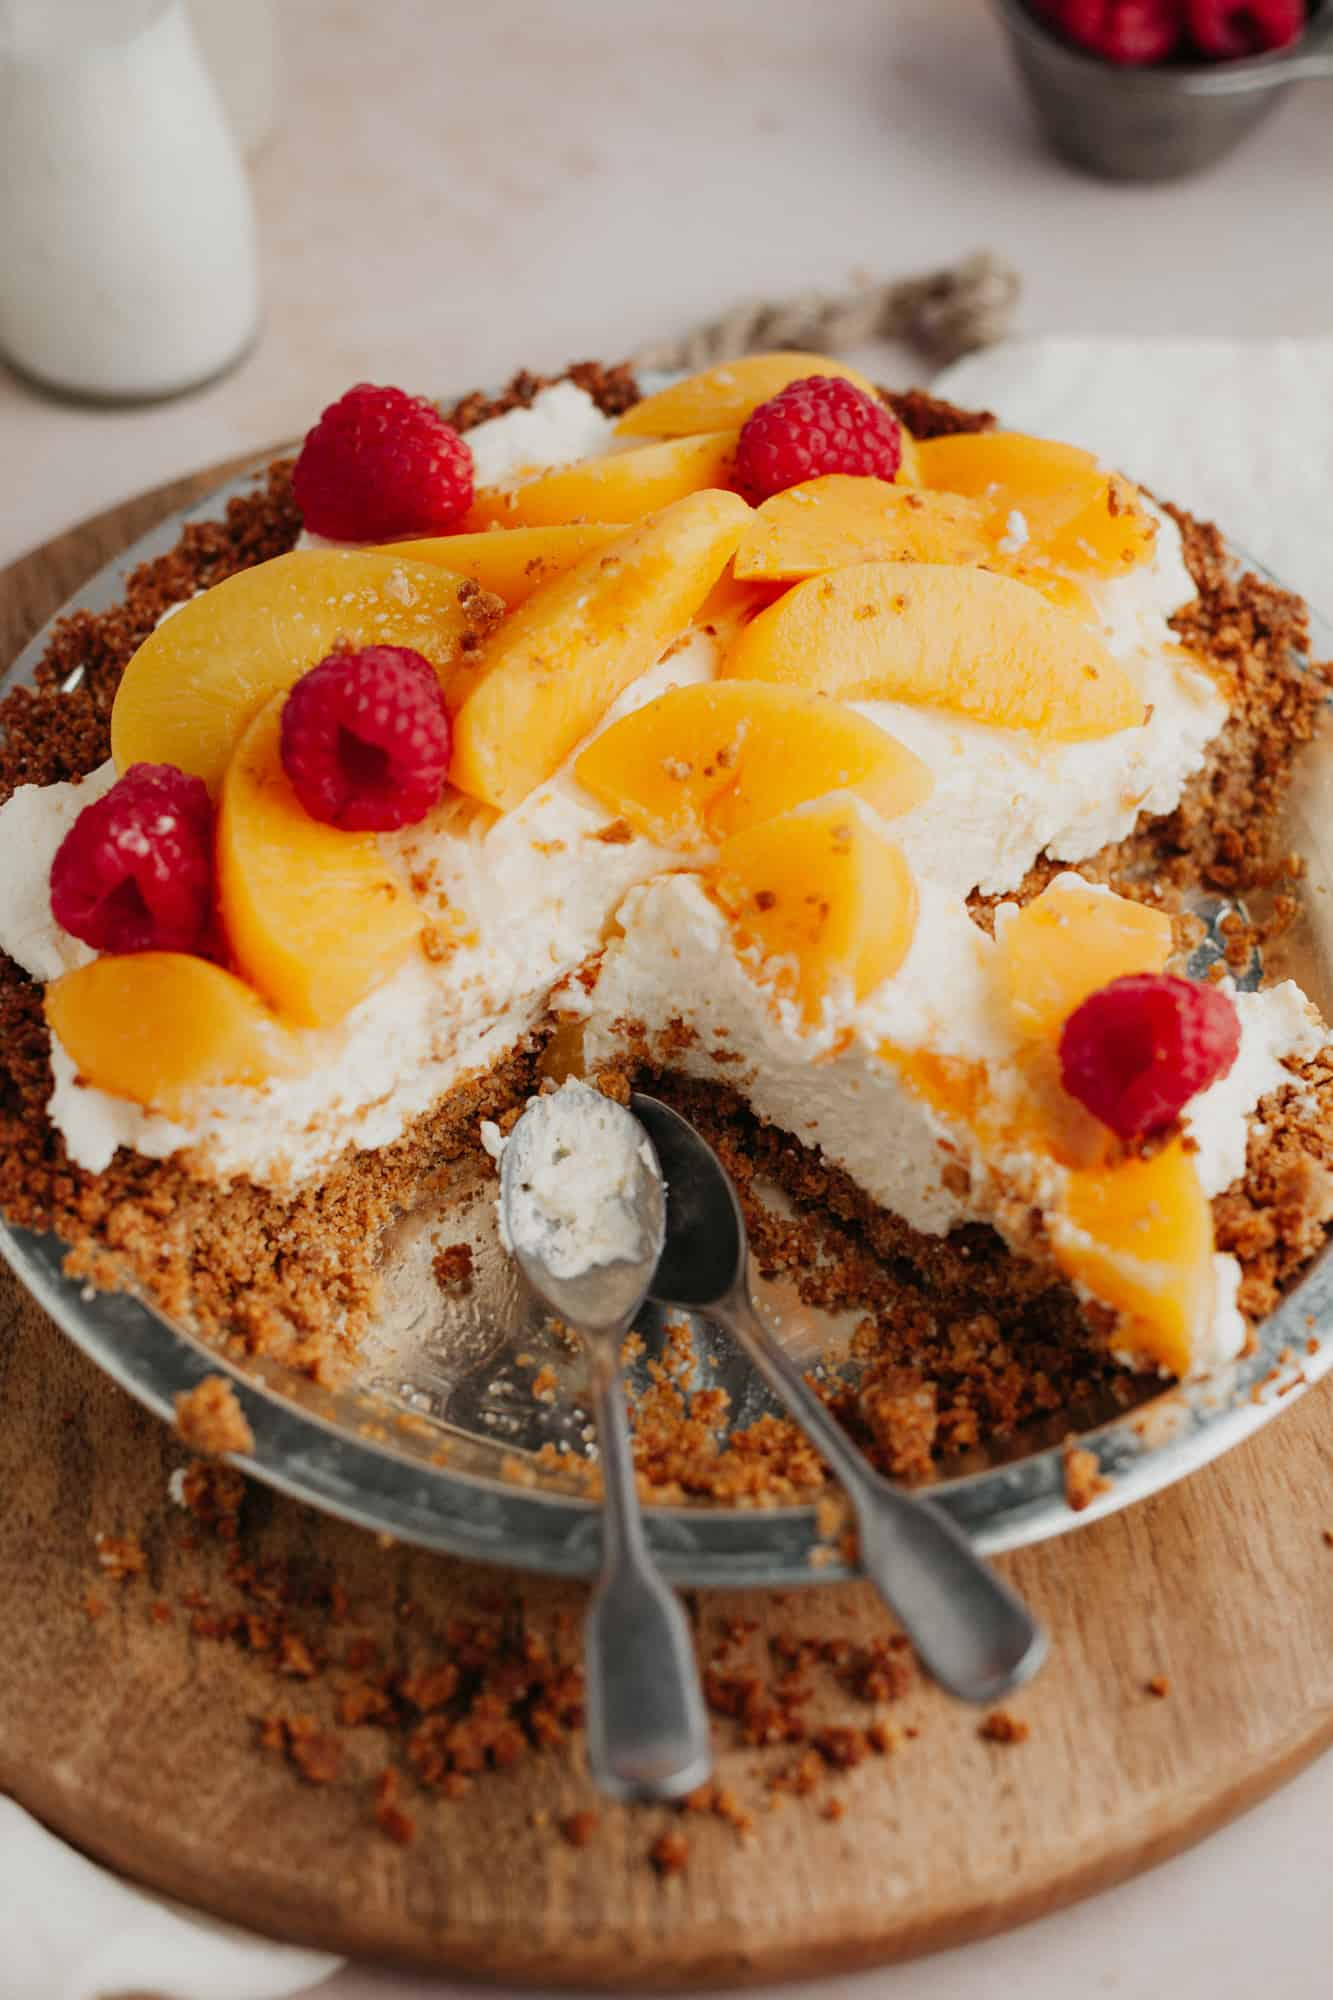 A no bake peach pie in a graham cracker crust, topped with sliced peached and raspberries. A few slices have been taken out.